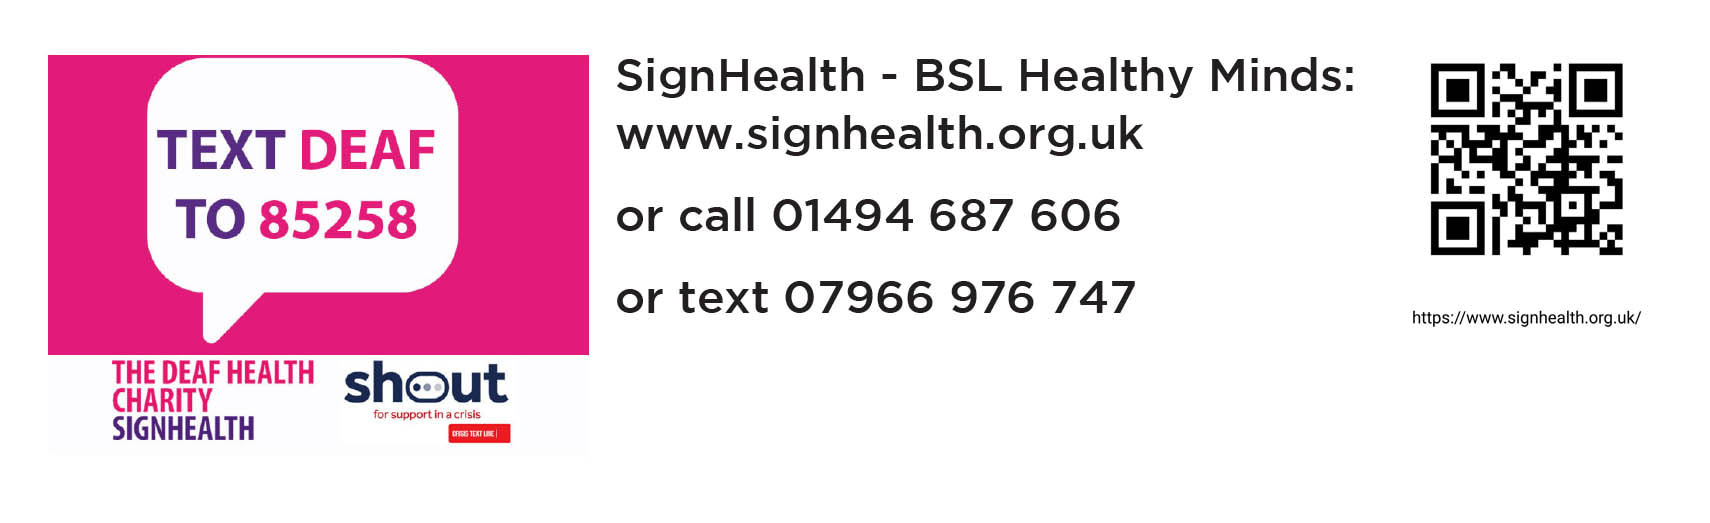 Banner link to the Charity Sign Health for deaf people in the UK